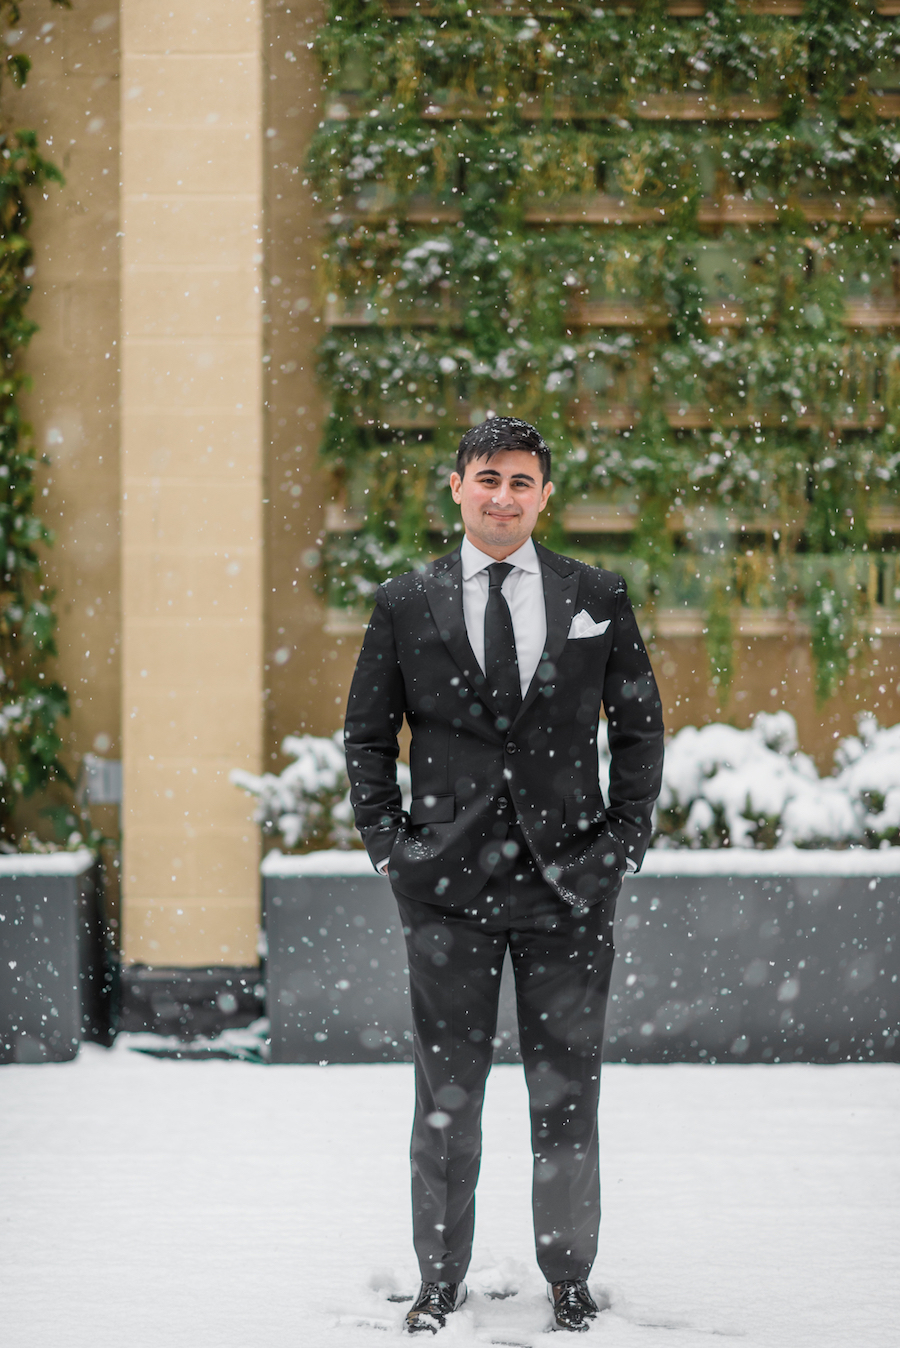 A Lancaster, Pennsylvania Snowy Winter Wedding - The Overwhelmed Bride Wedding Inspiration Ideas Blog